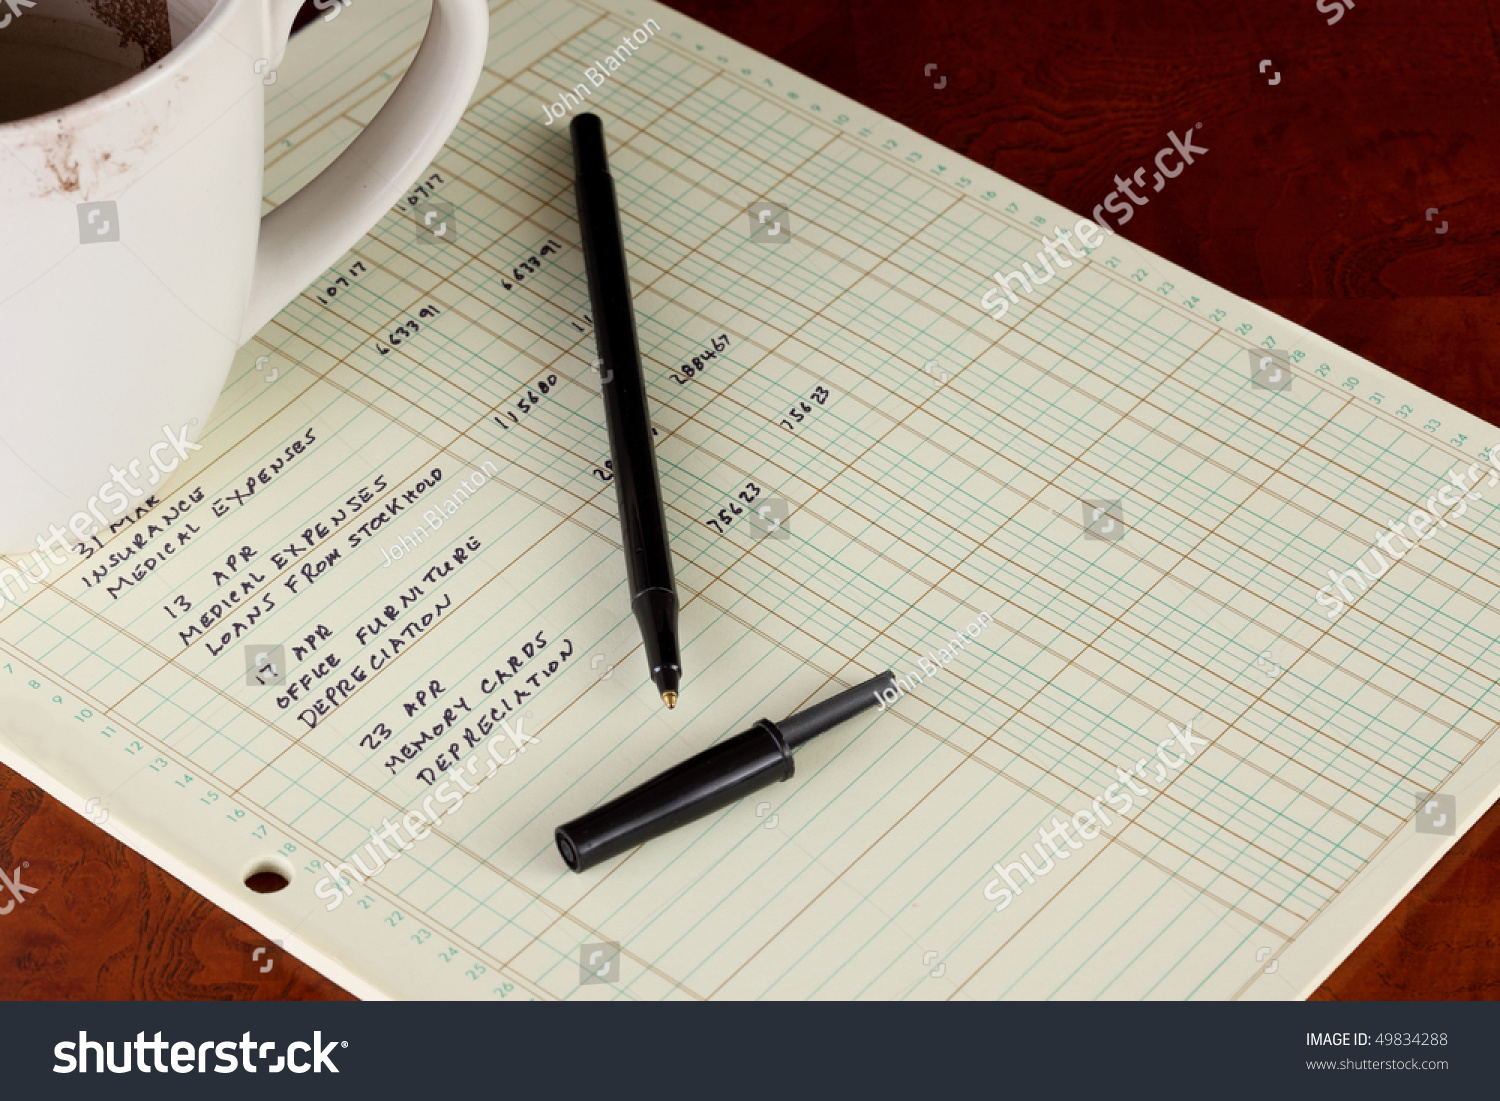 coffee cup with general ledger sheet showing journal entries and black ballpoint pen on polished